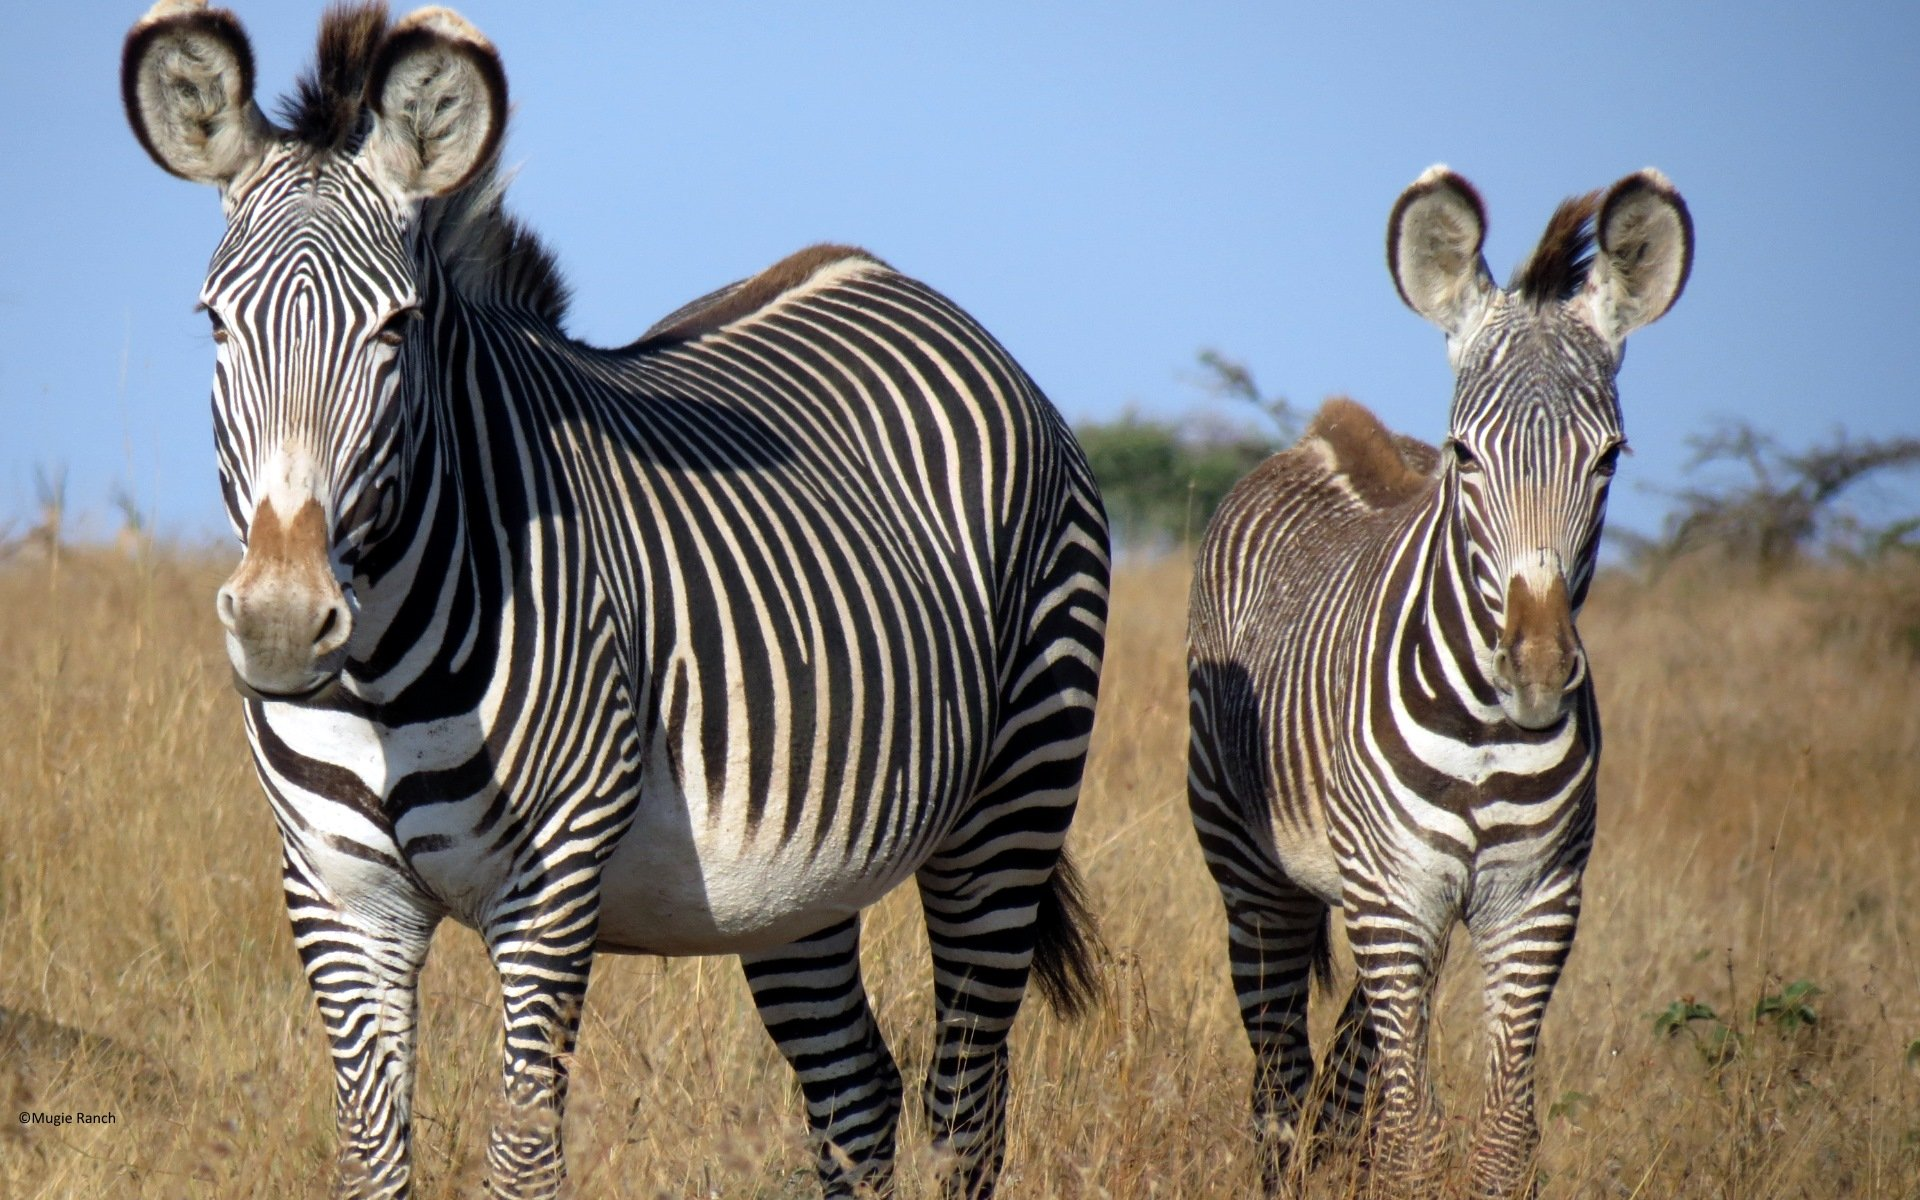 The Grevy's Zebra was once gifted to prominent people including presidents, Sultans and Governors. It is no wonder then it bears the name, imperial zebra.